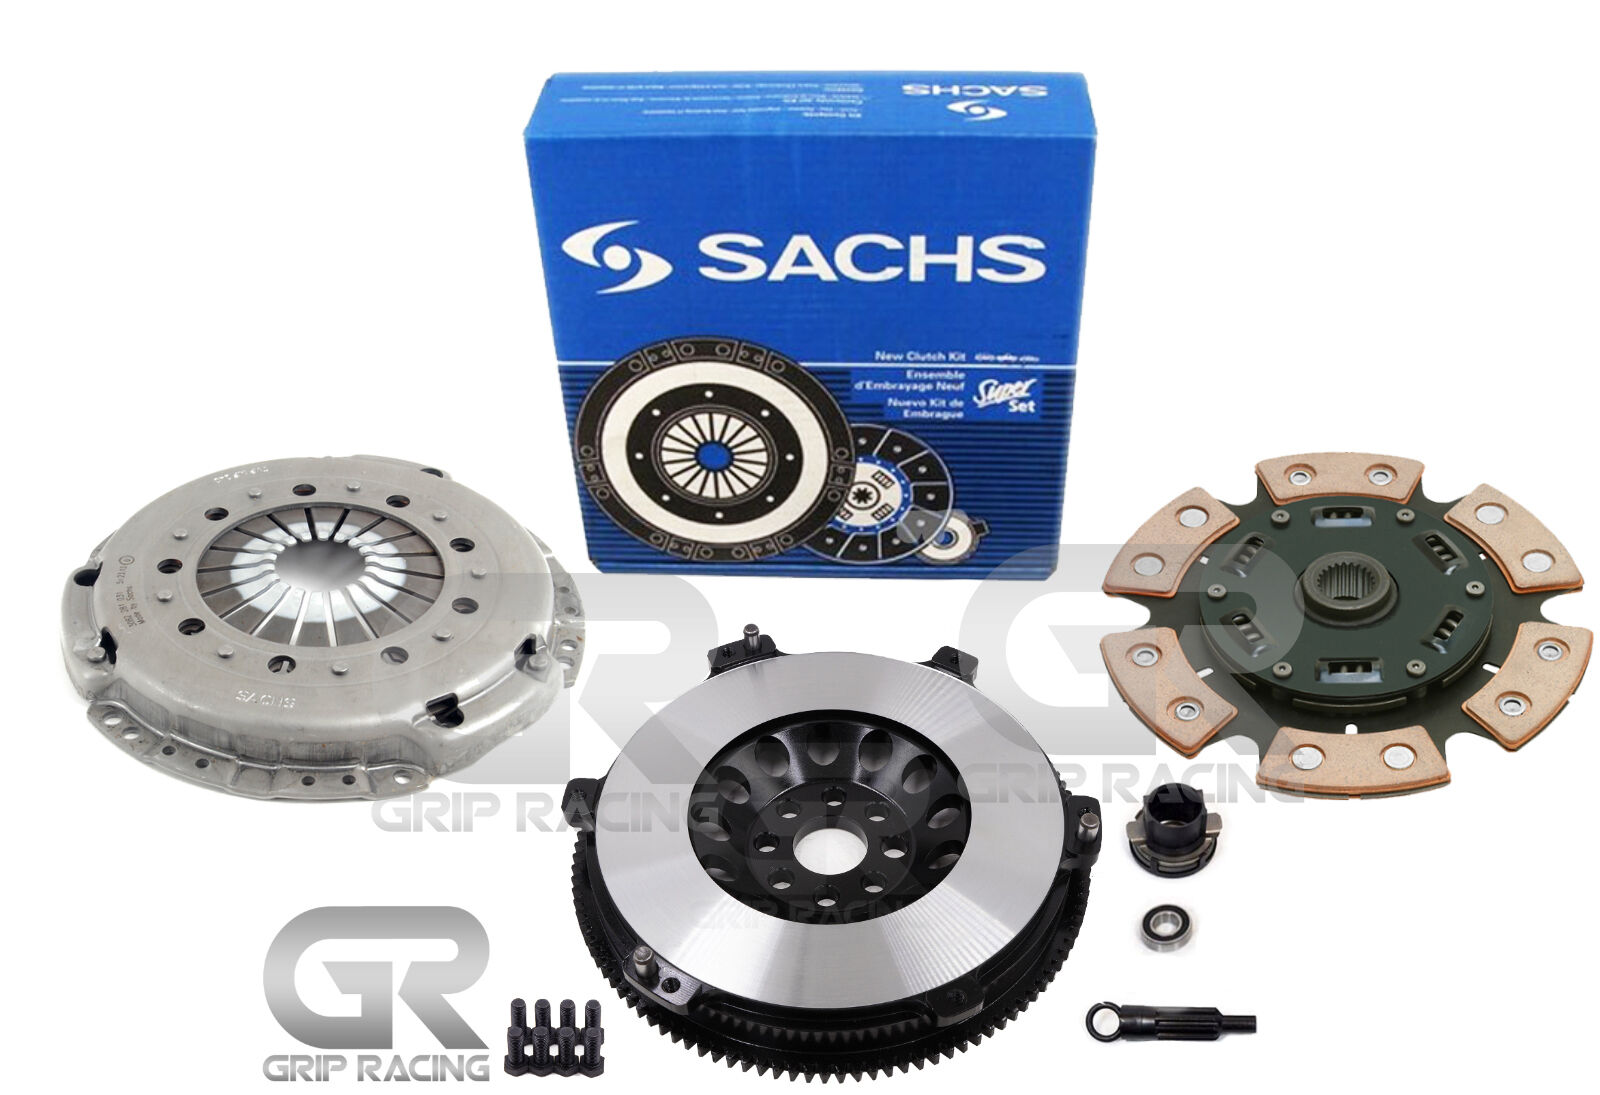 Details about SACHS GRIP STAGE 3 KIT+CHROMOLY RACING FLYWHEEL FOR 2001-2006  BMW M3 E46 3 2L